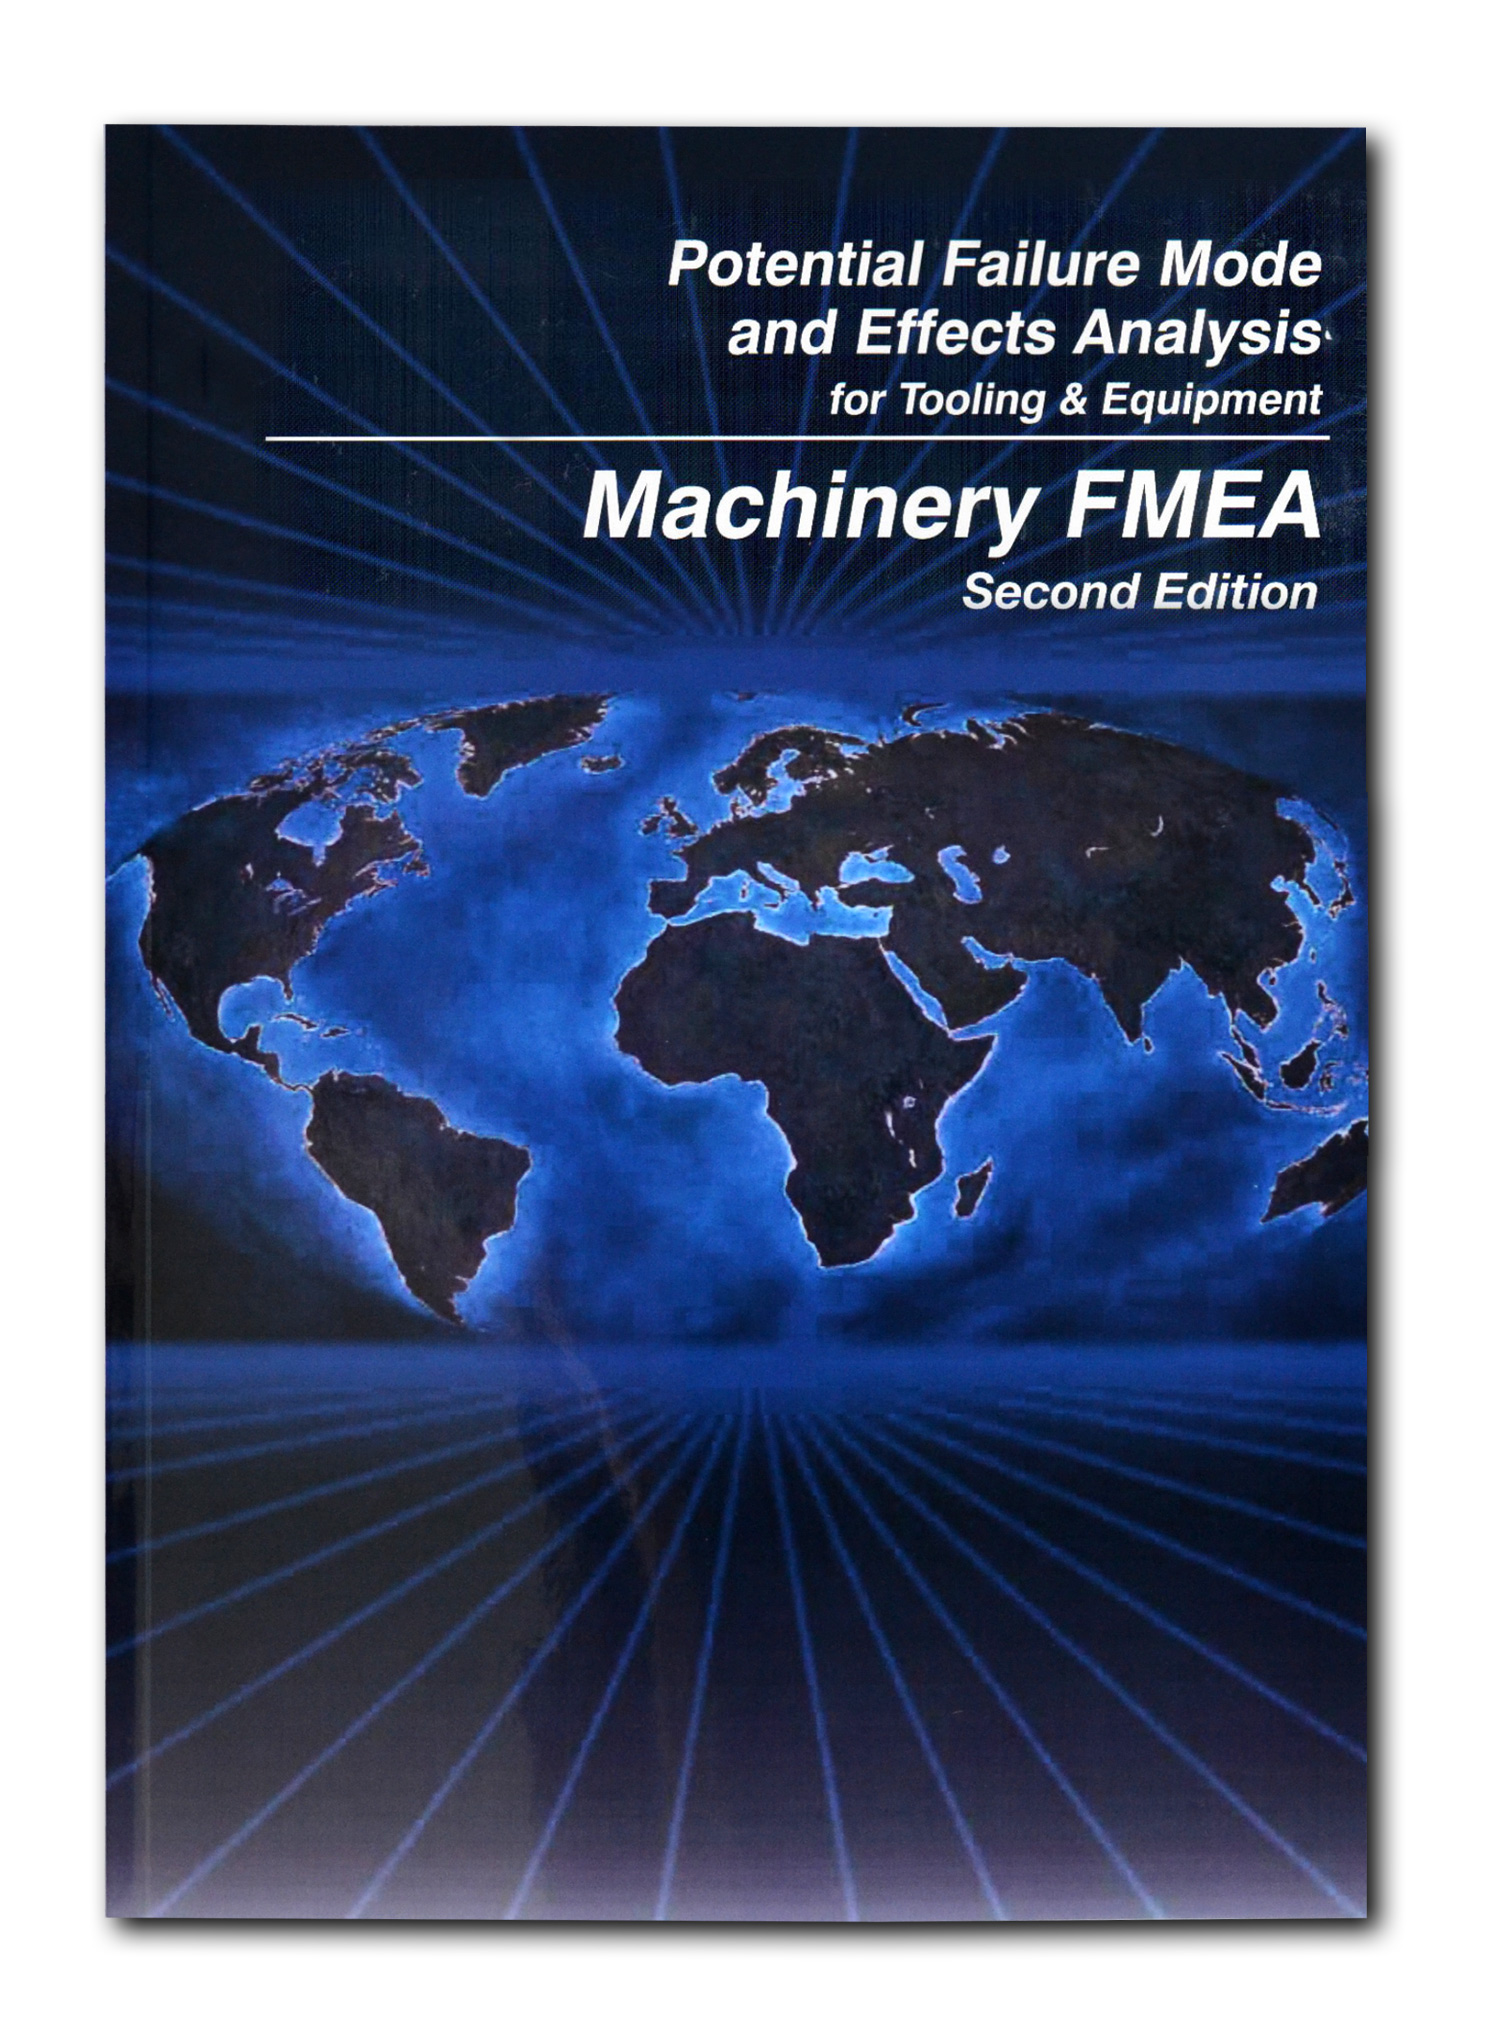 aiag potential failure mode and effects analysis for tooling rh lmrglobal co uk FMEA 4th Edition AIAG 4th Edition